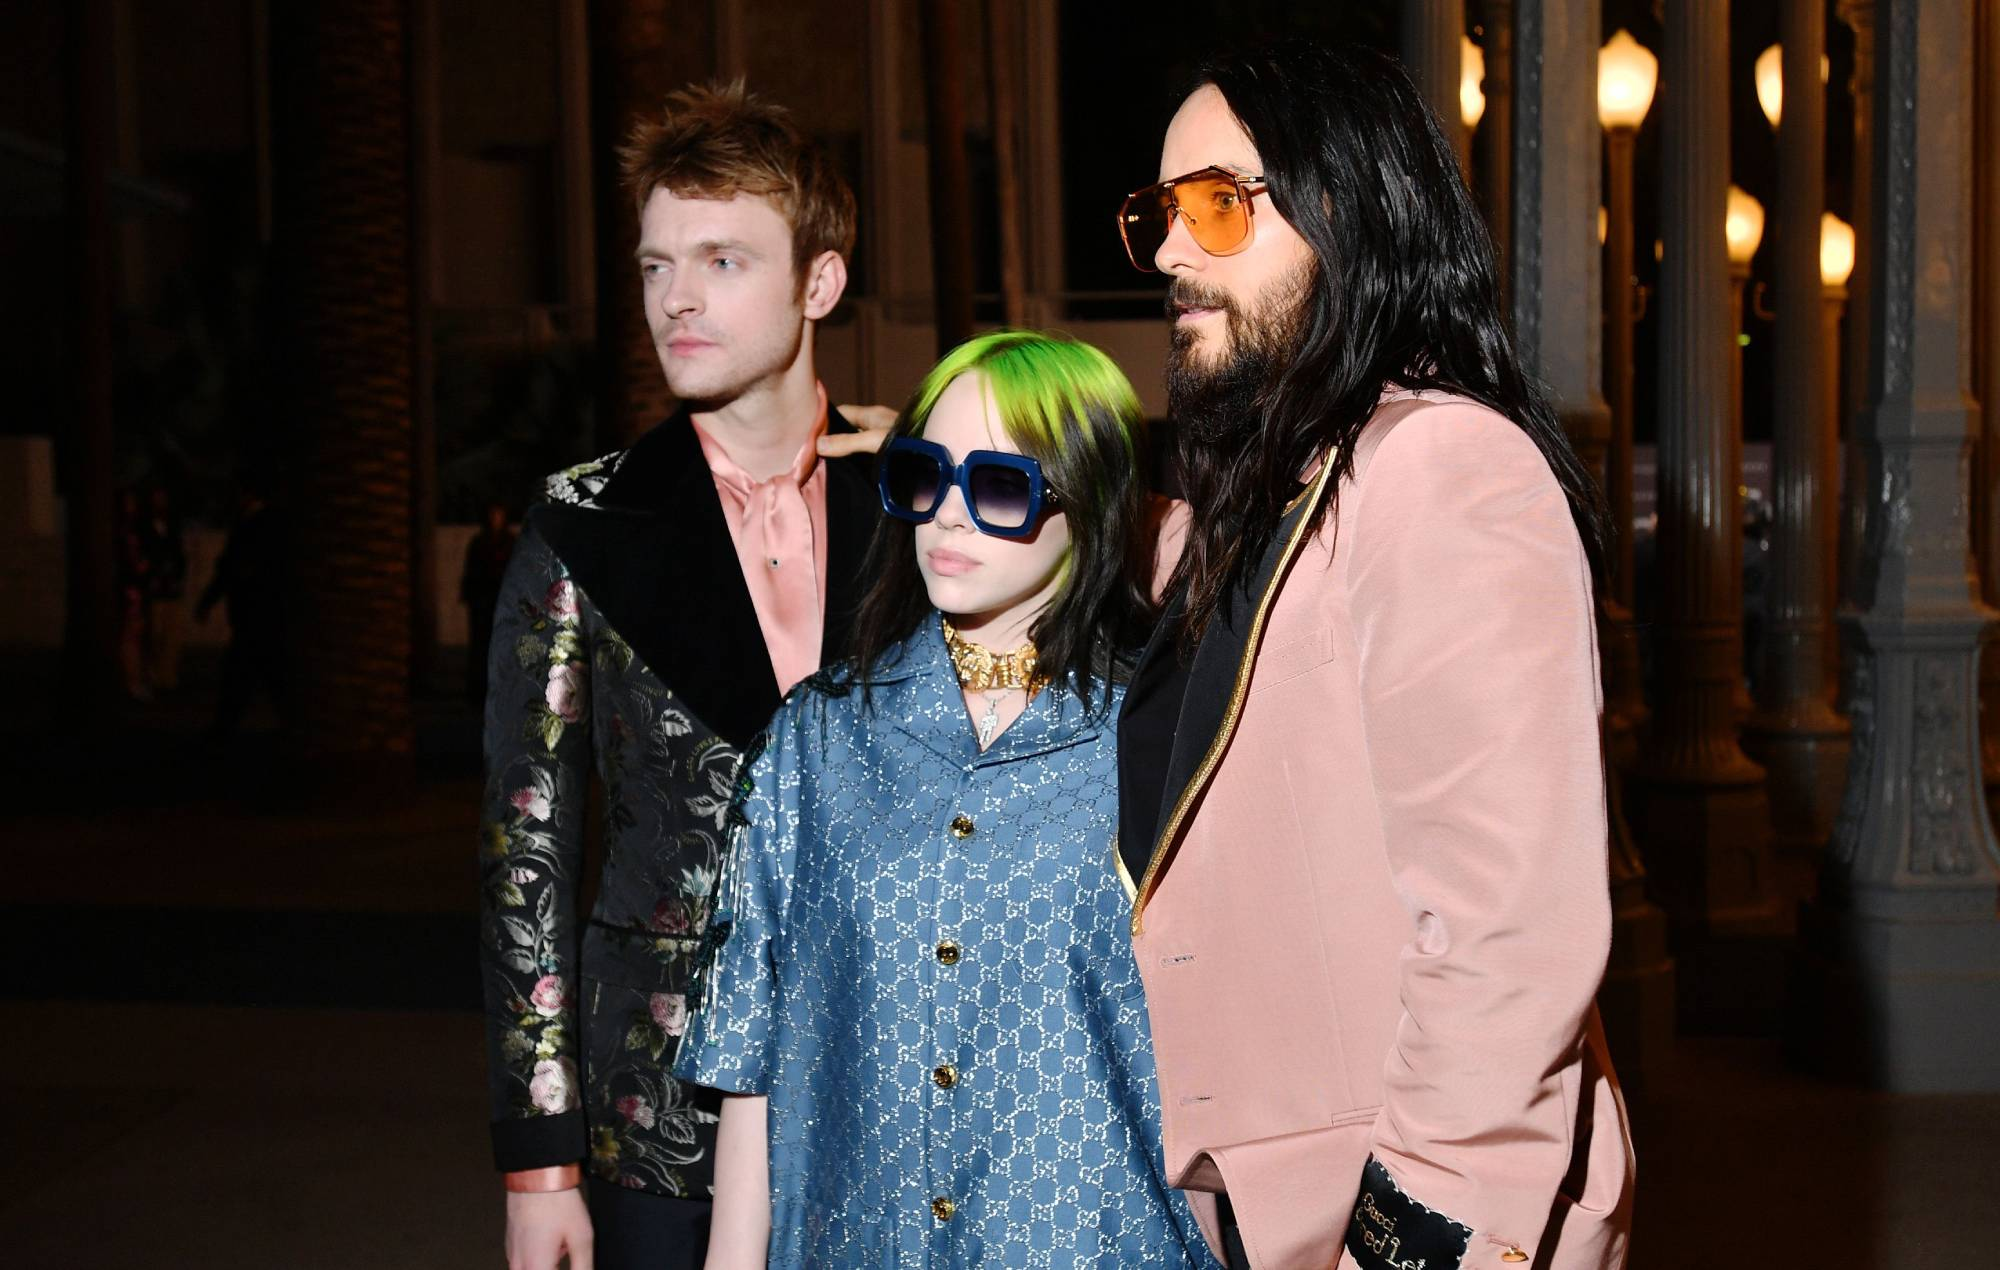 Jared Leto recalls how he nearly signed Billie Eilish and Finneas